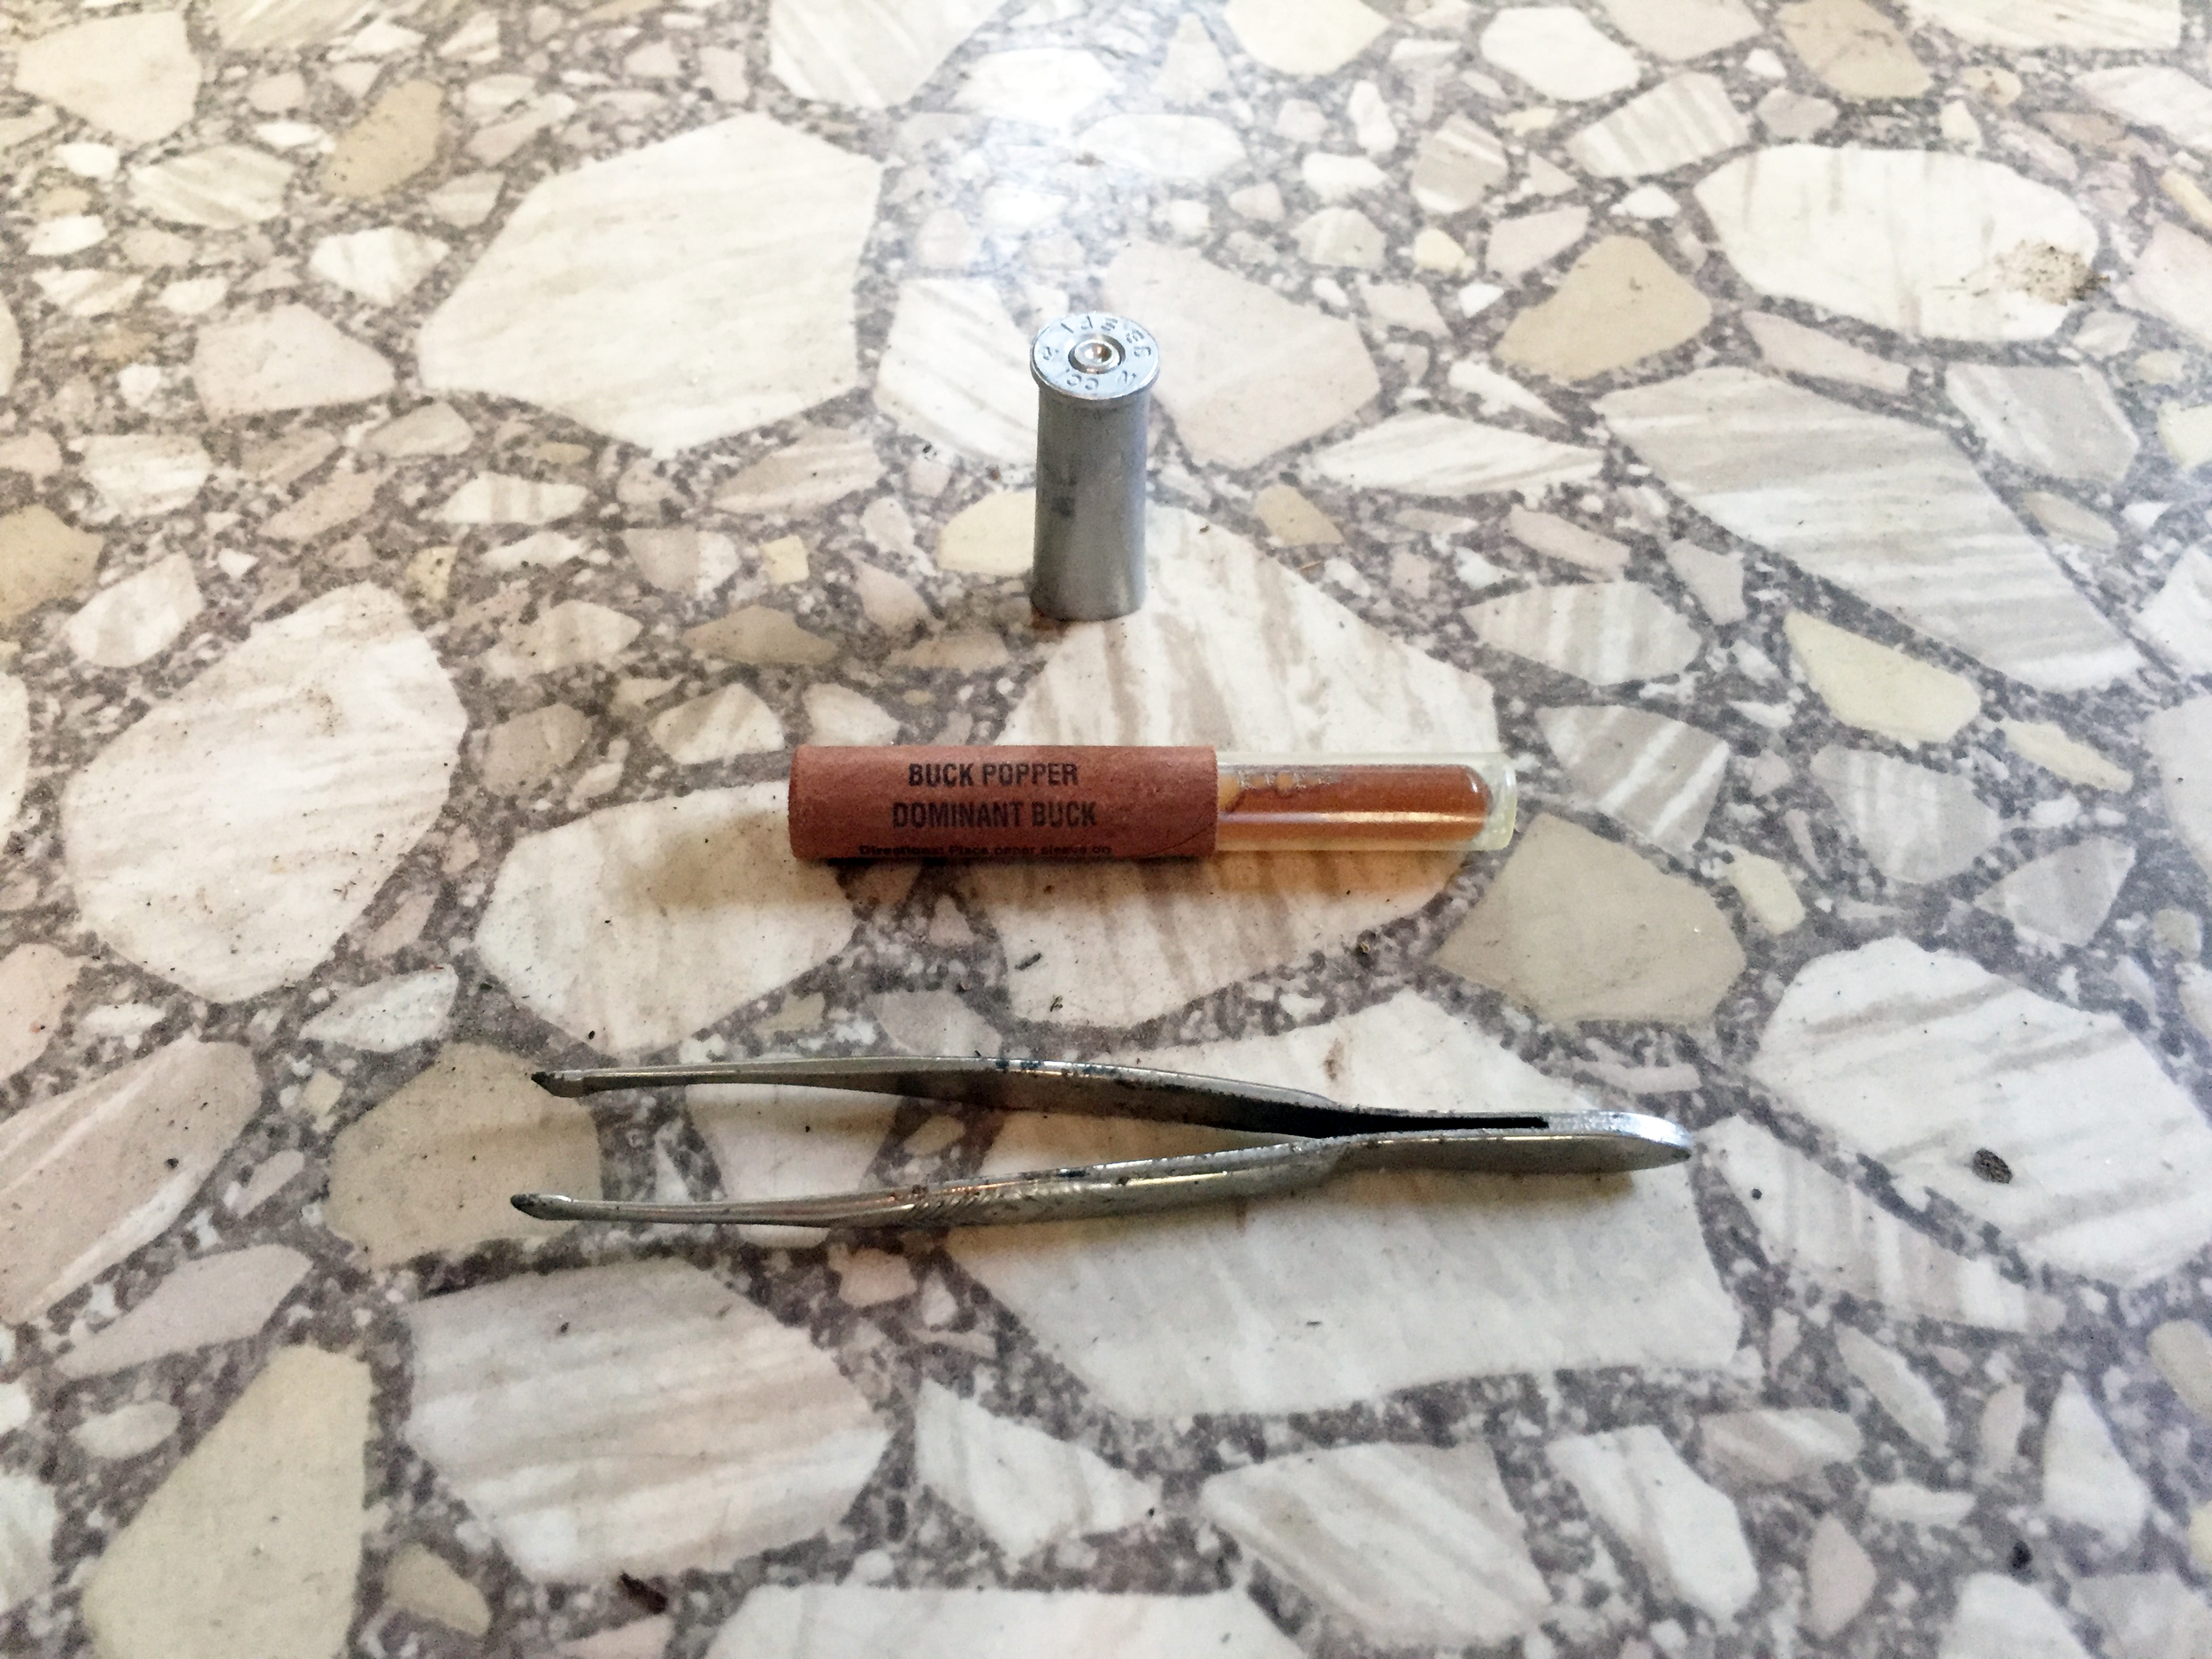 A bullet casing, an I have no idea what (obviously the official scientific name), and some old tweezers.